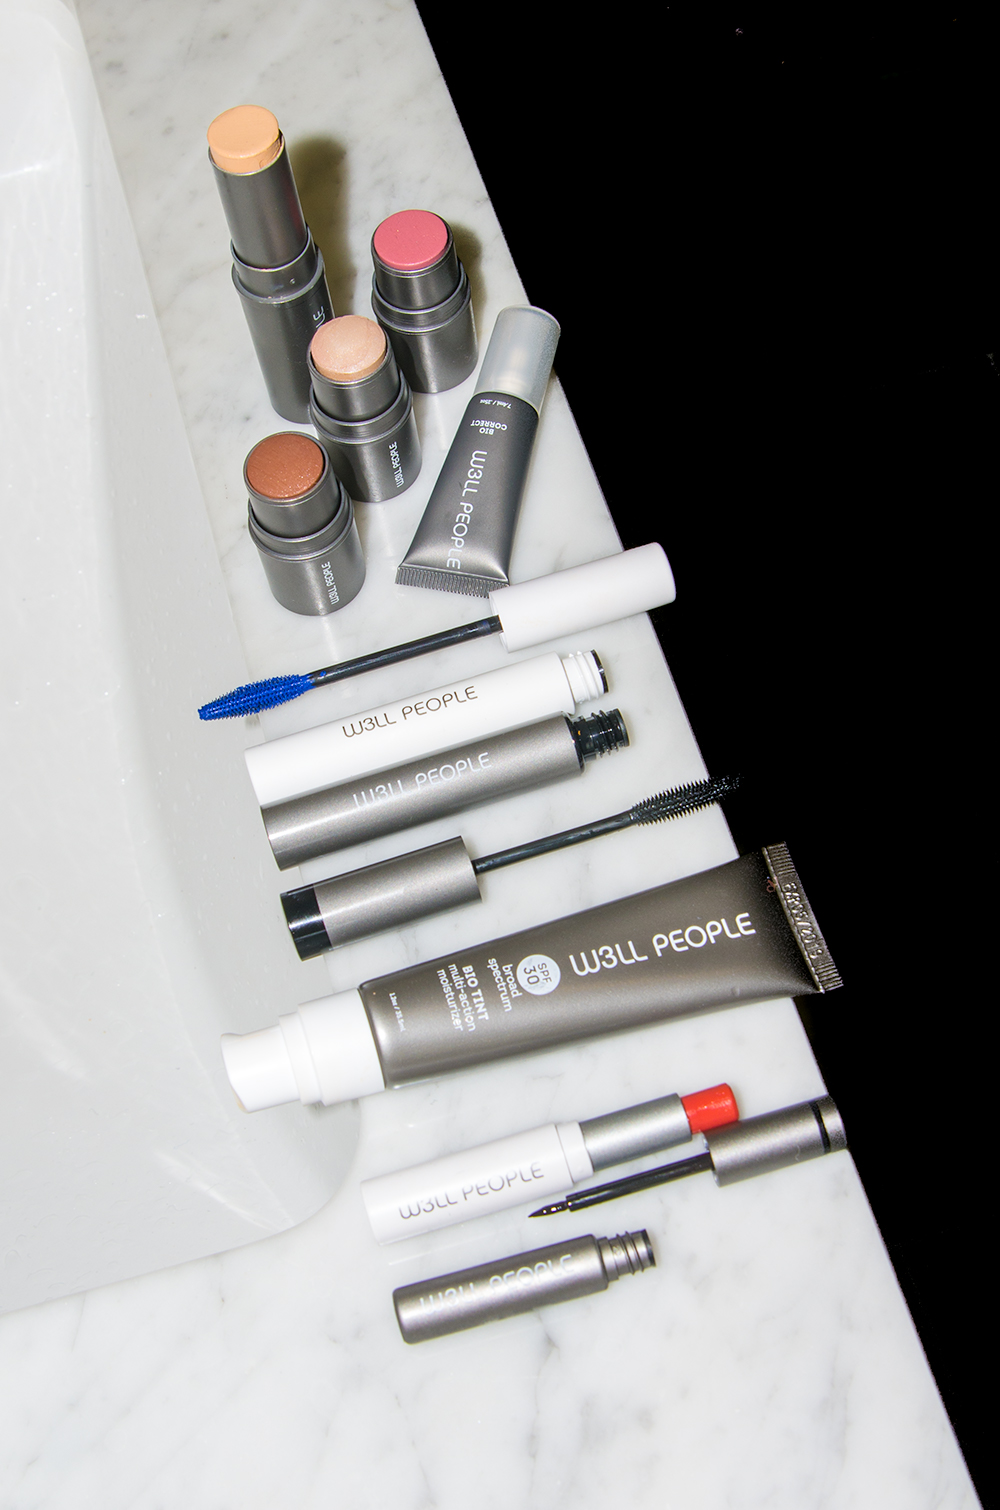 W3LL People Is Making Organic Makeup Egalitarian (aka Affordable) – Full Review